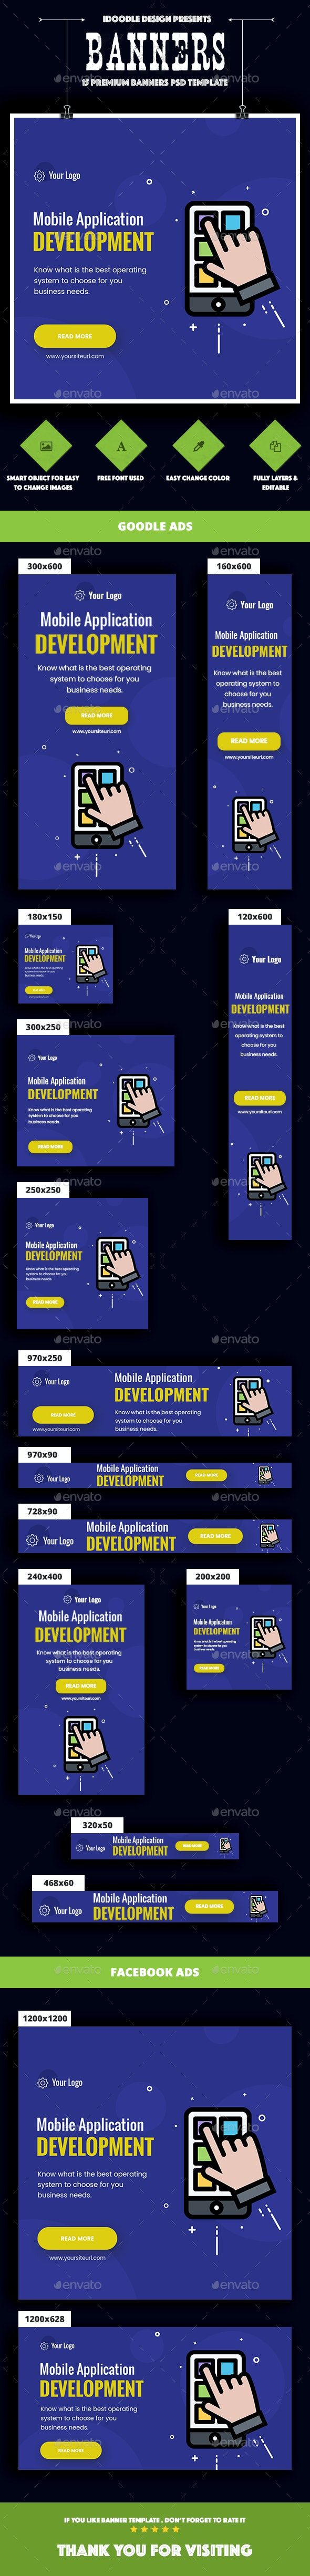 Mobile Application Banners Ad - Banners & Ads Web Elements